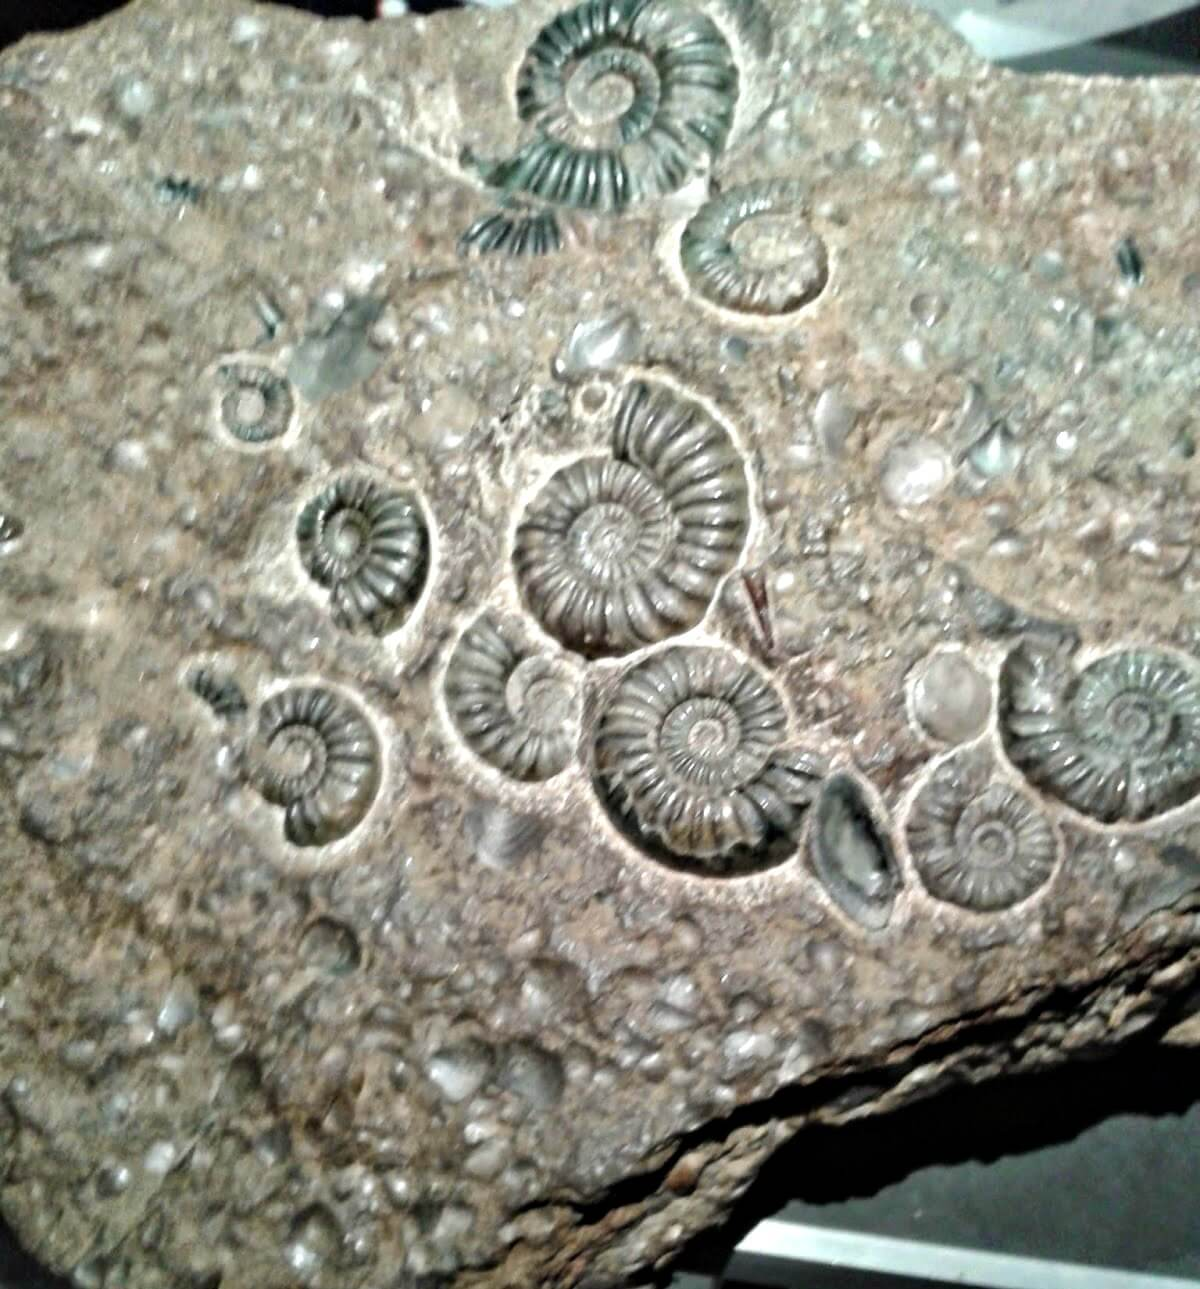 museums to visit in Cardiff - ammonite fossils